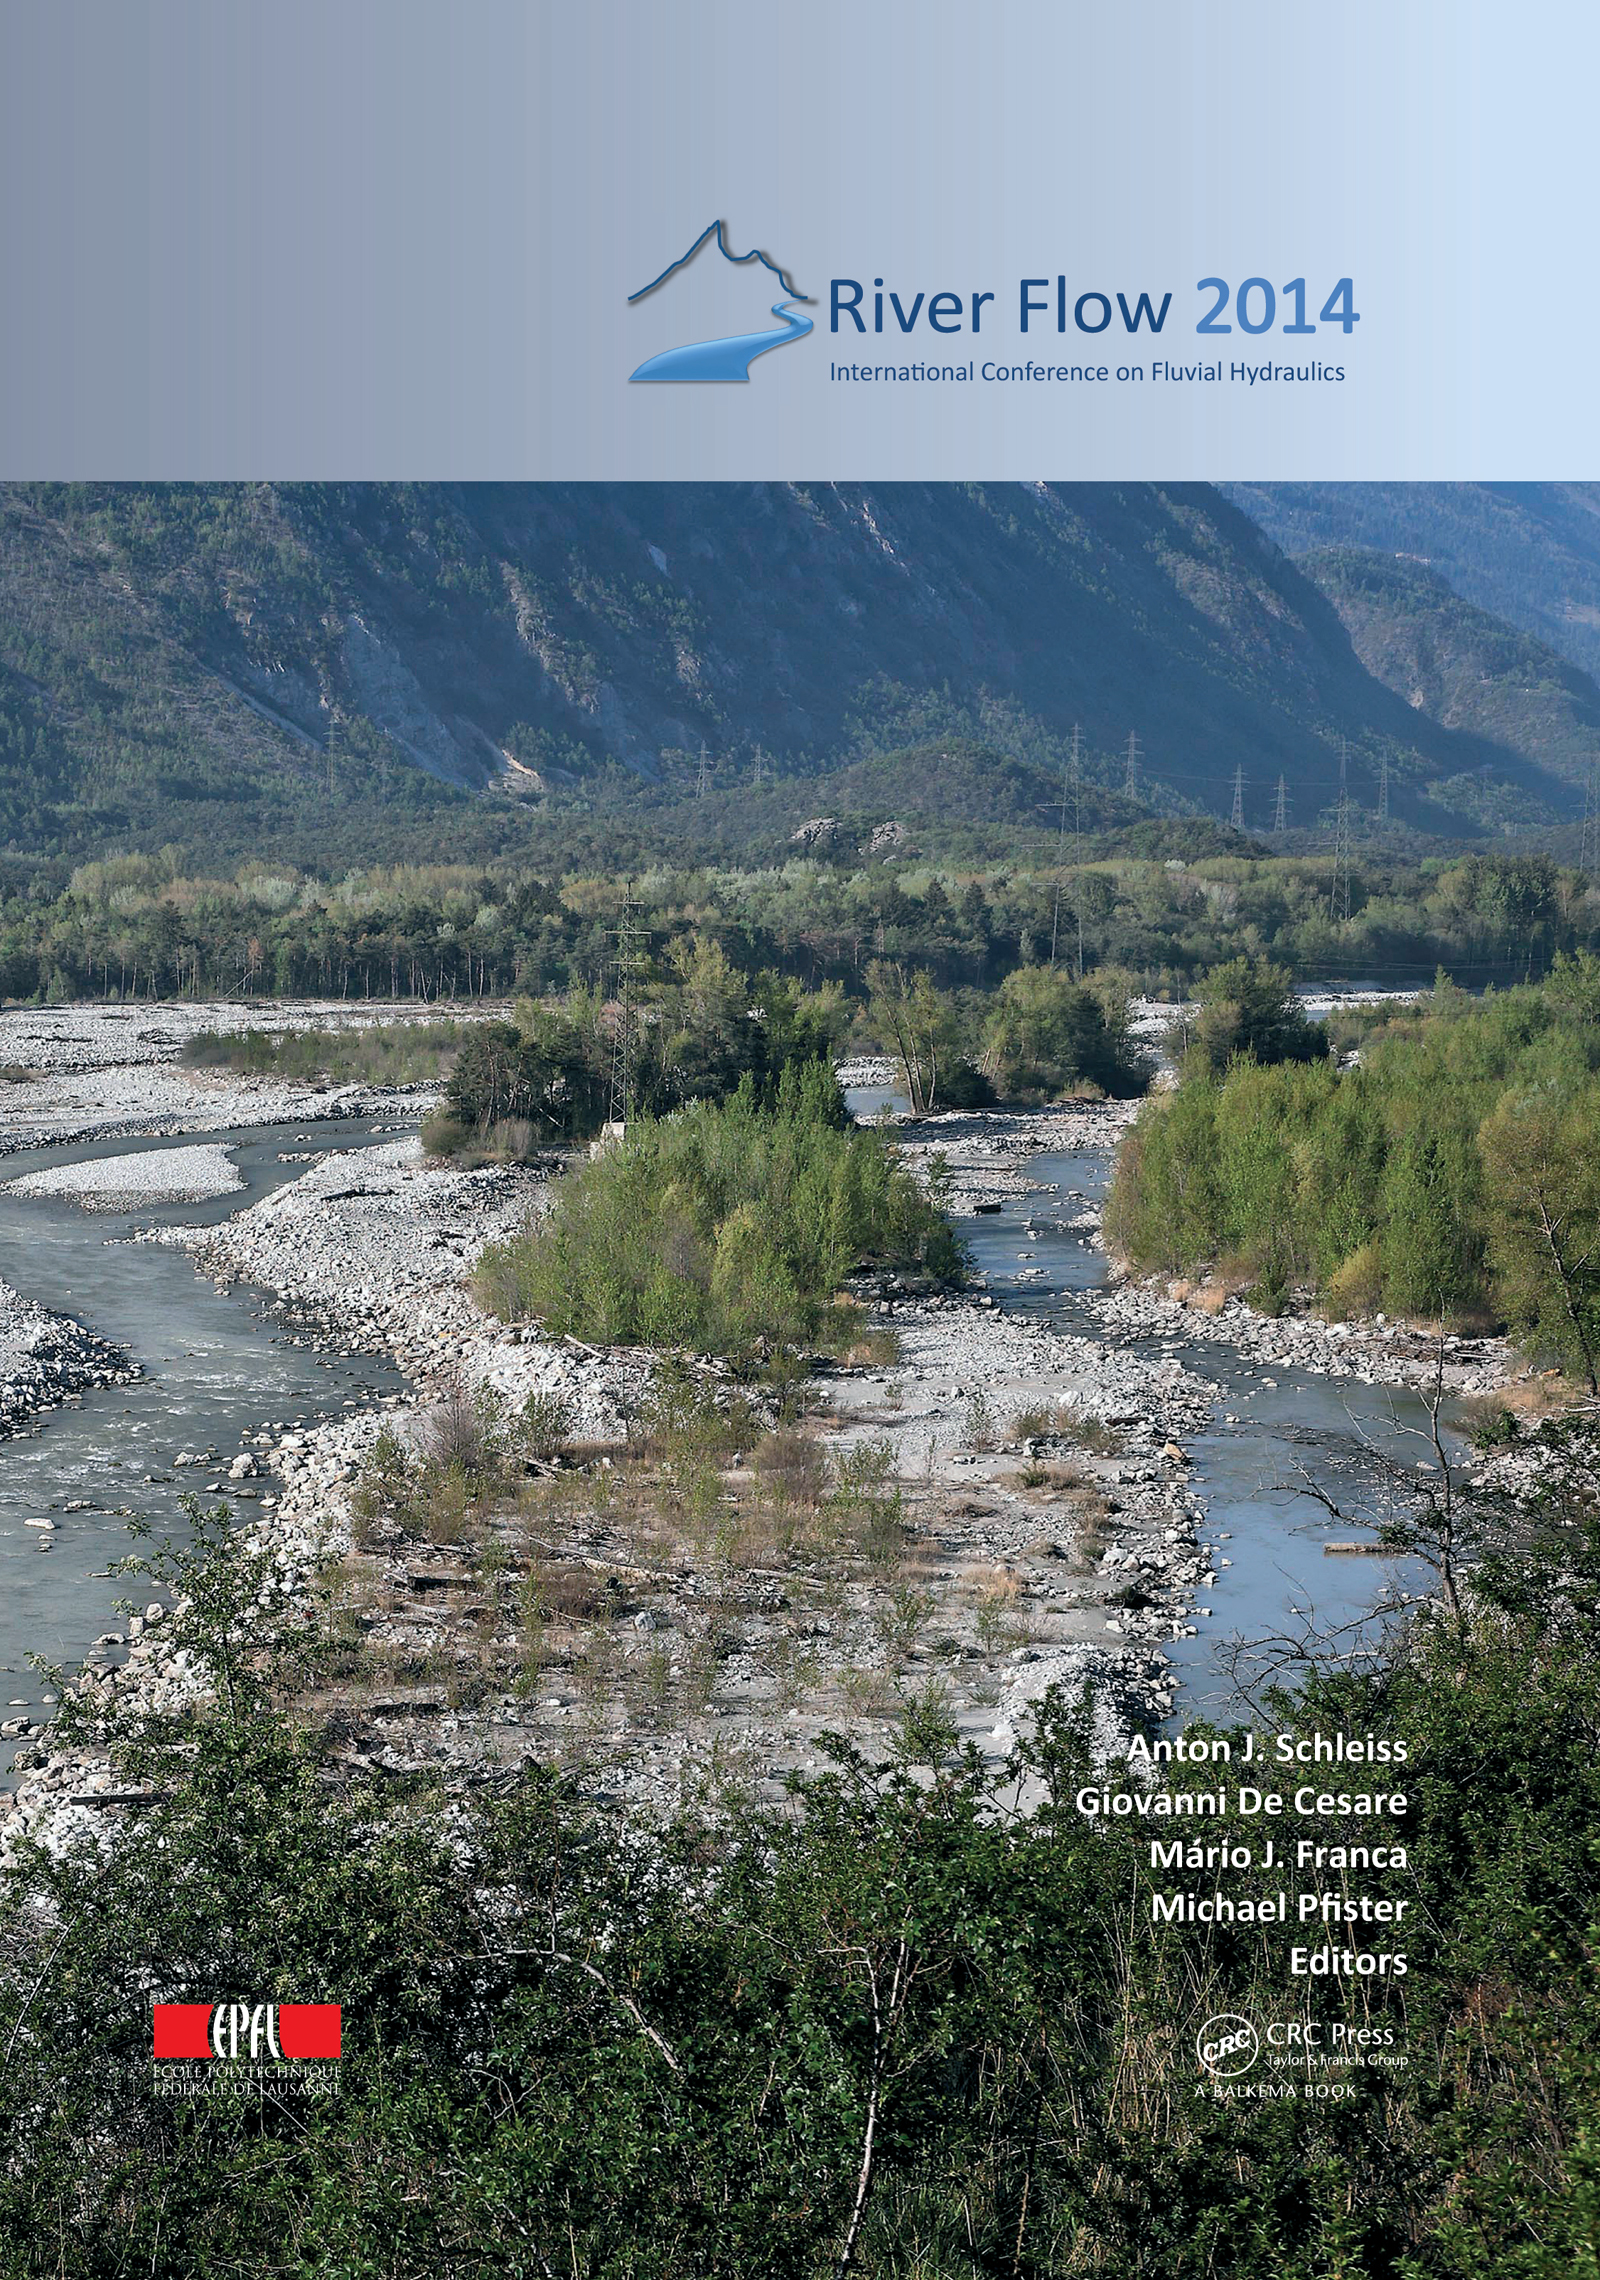 River Flow 2014: 1st Edition (Pack - Book and CD) book cover